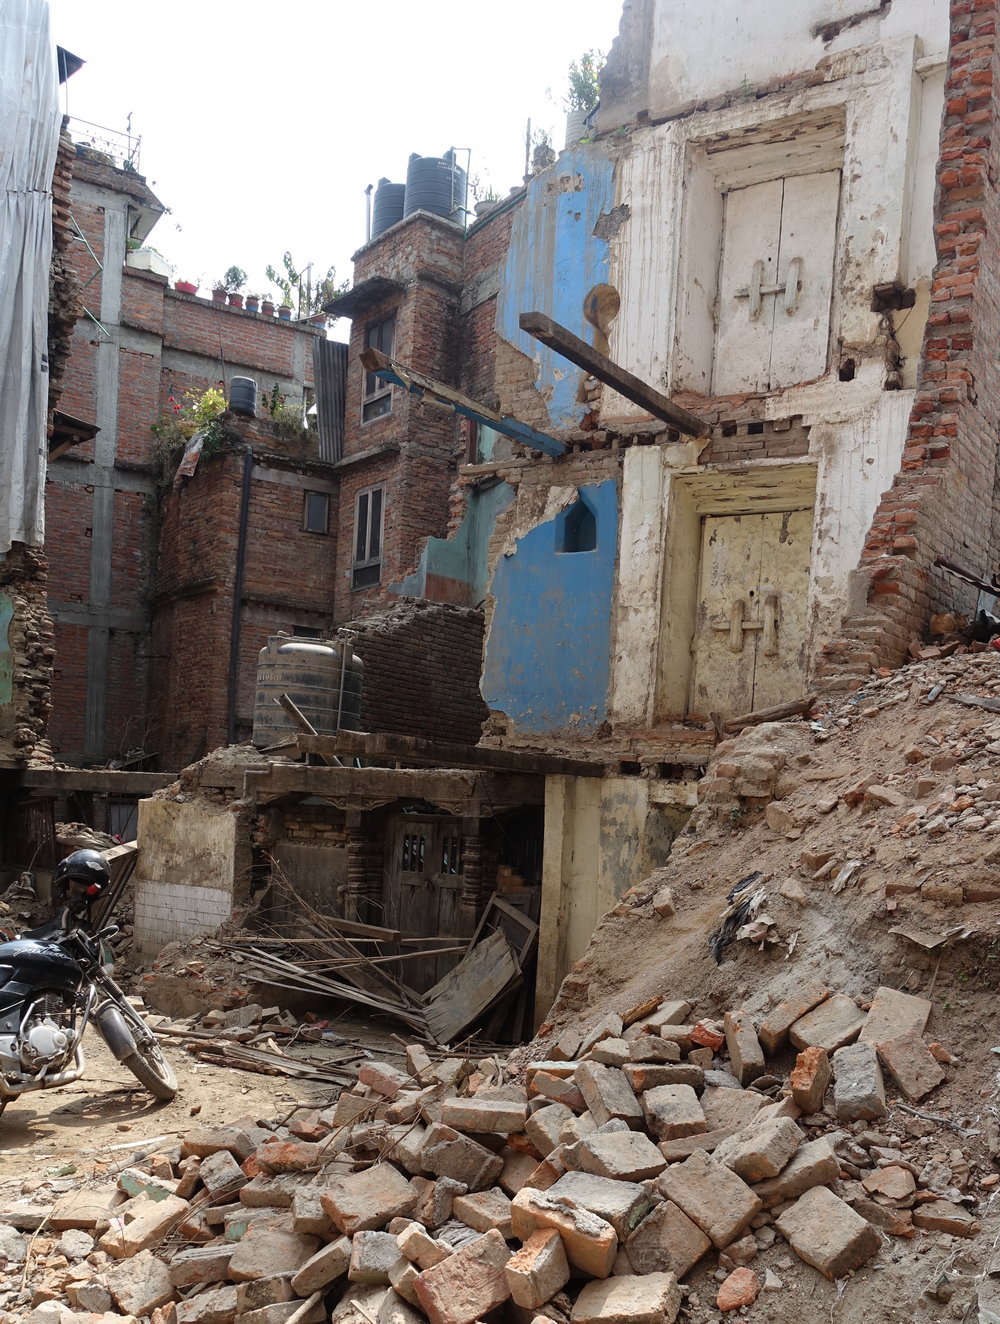 A much more obvious collapse, waiting for reconstruction